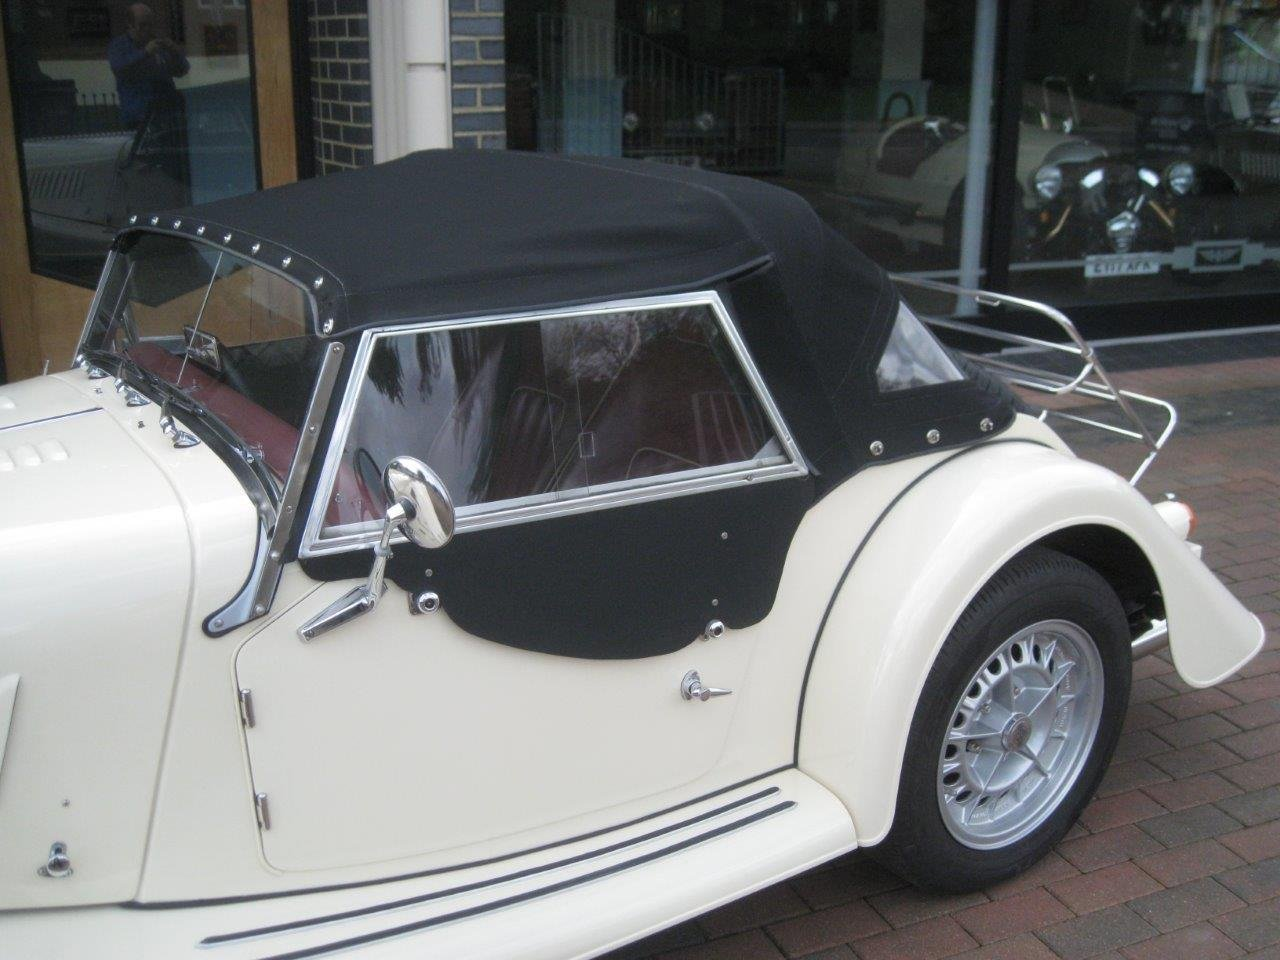 2001 Plus 8  - £34,995 For Sale (picture 6 of 6)